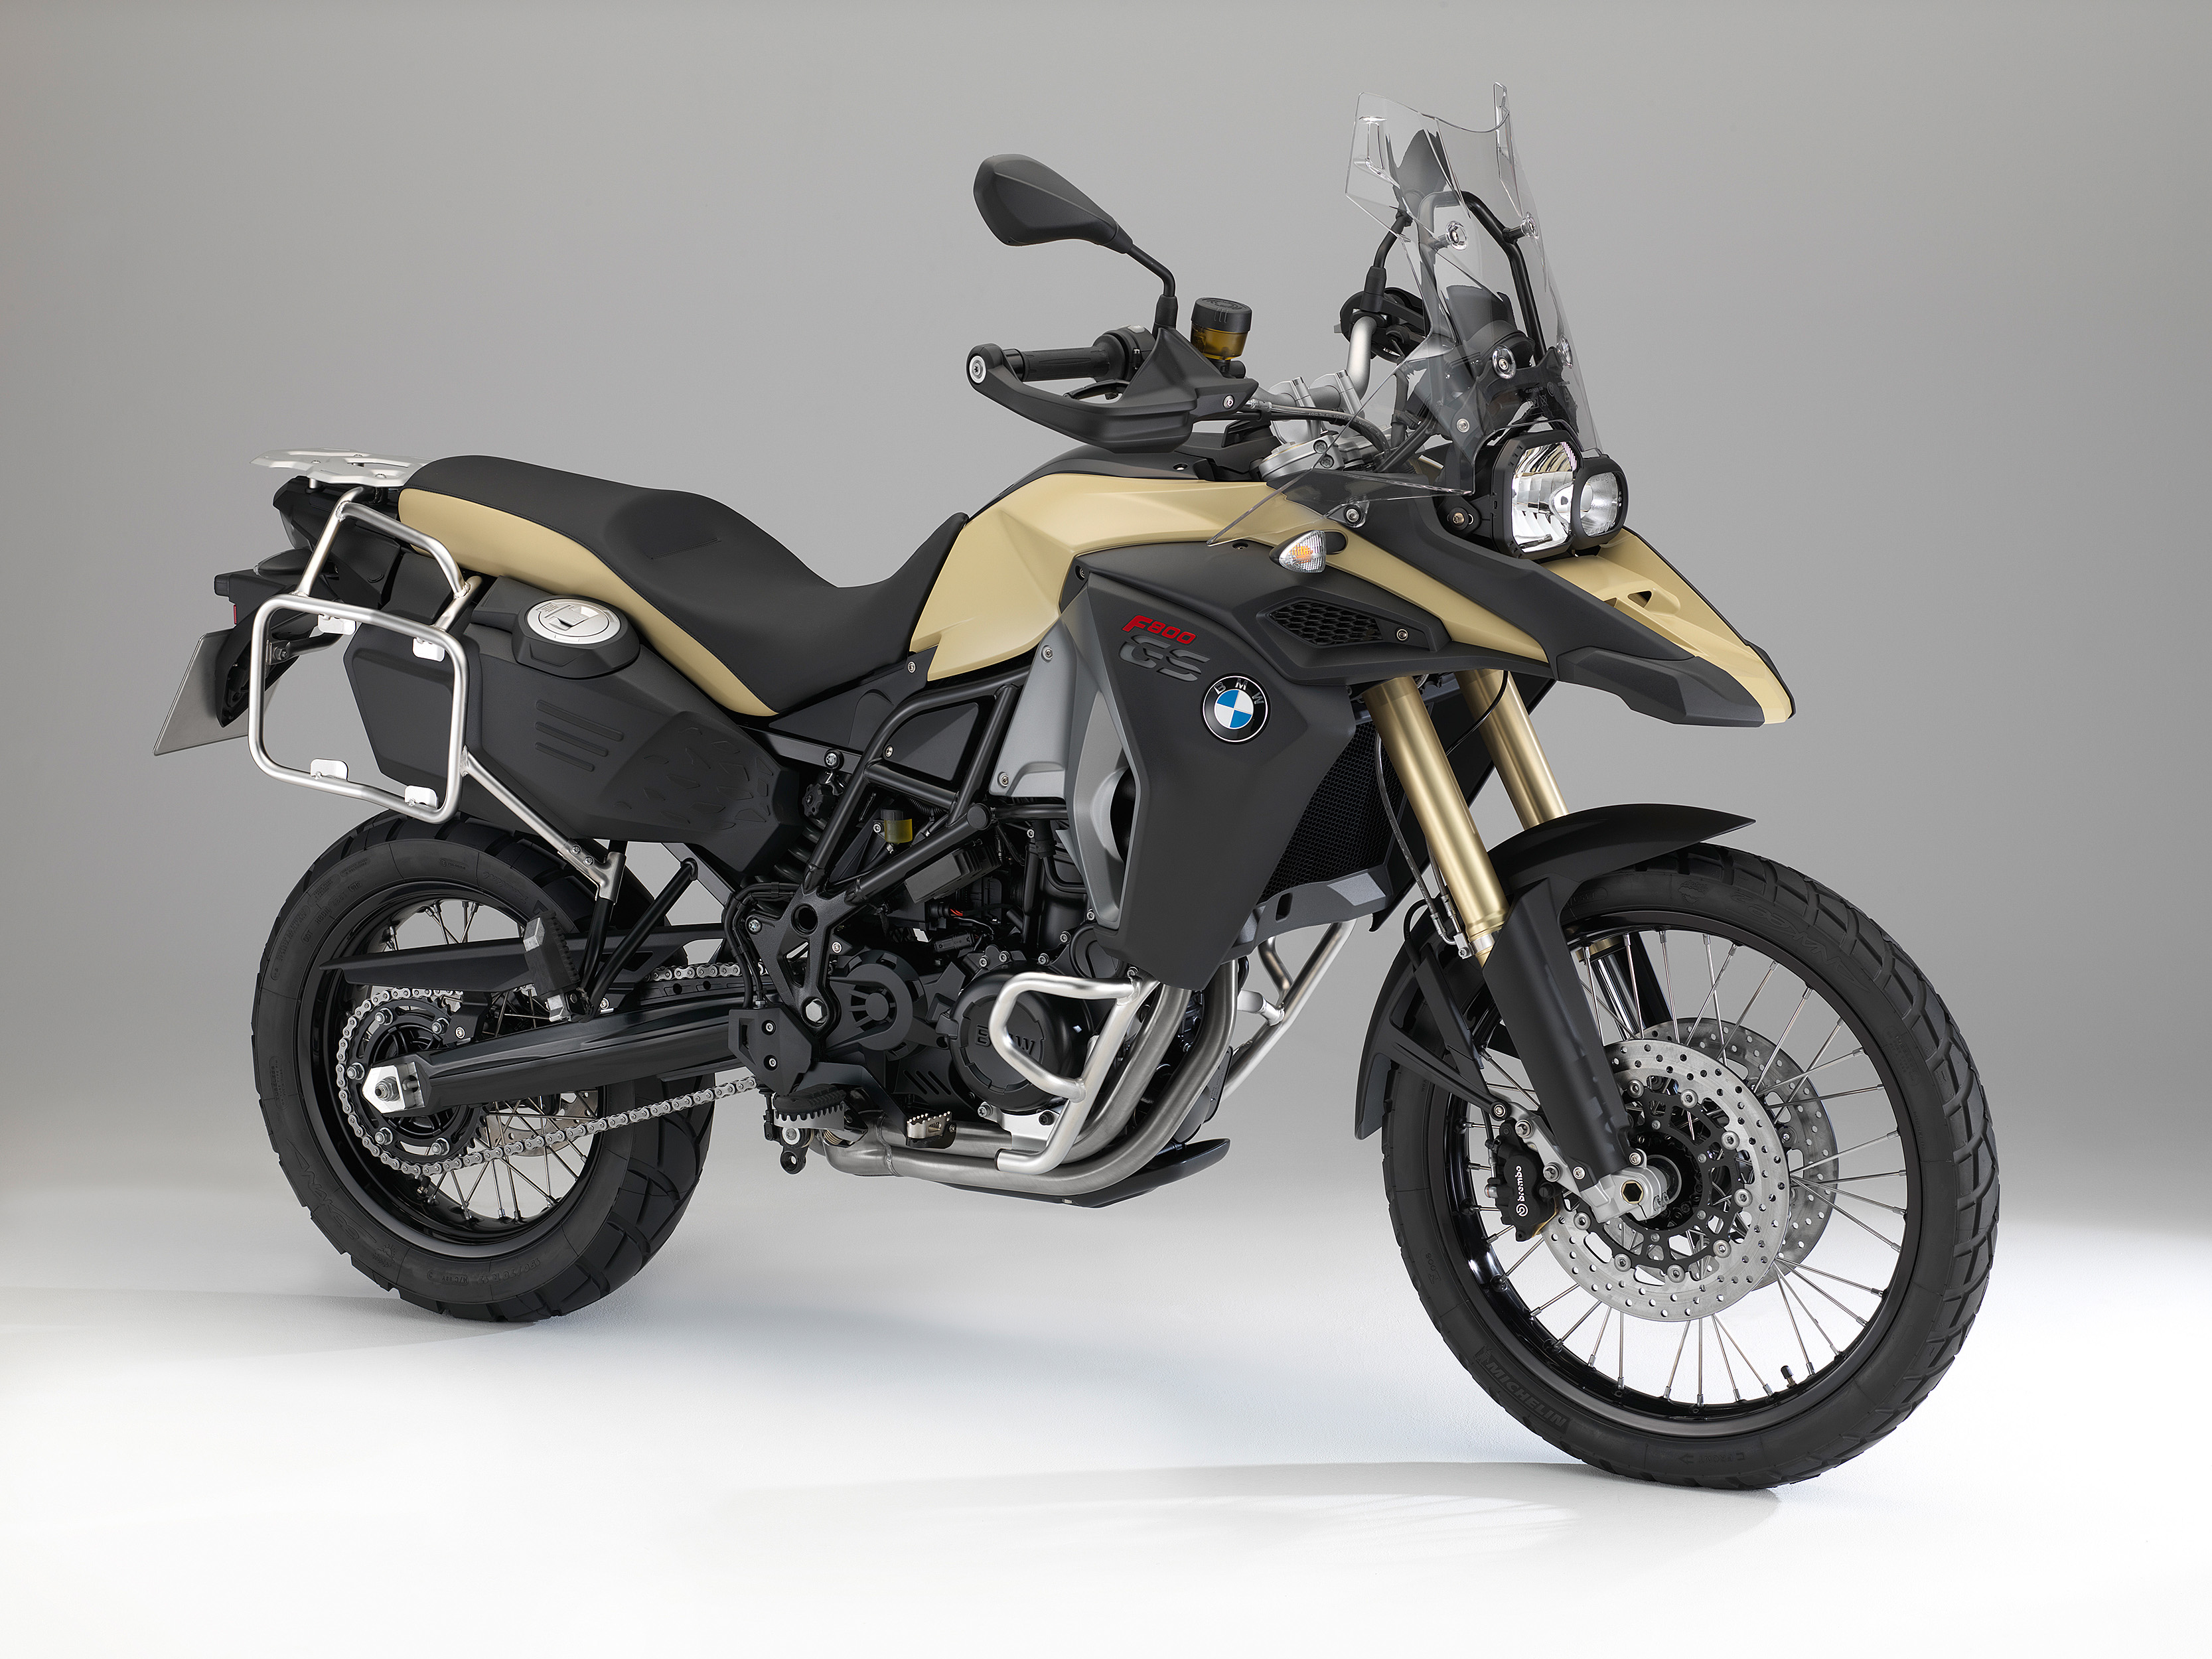 The New Bmw F800gs Adventure Little Brother Of Bmw R1200gs